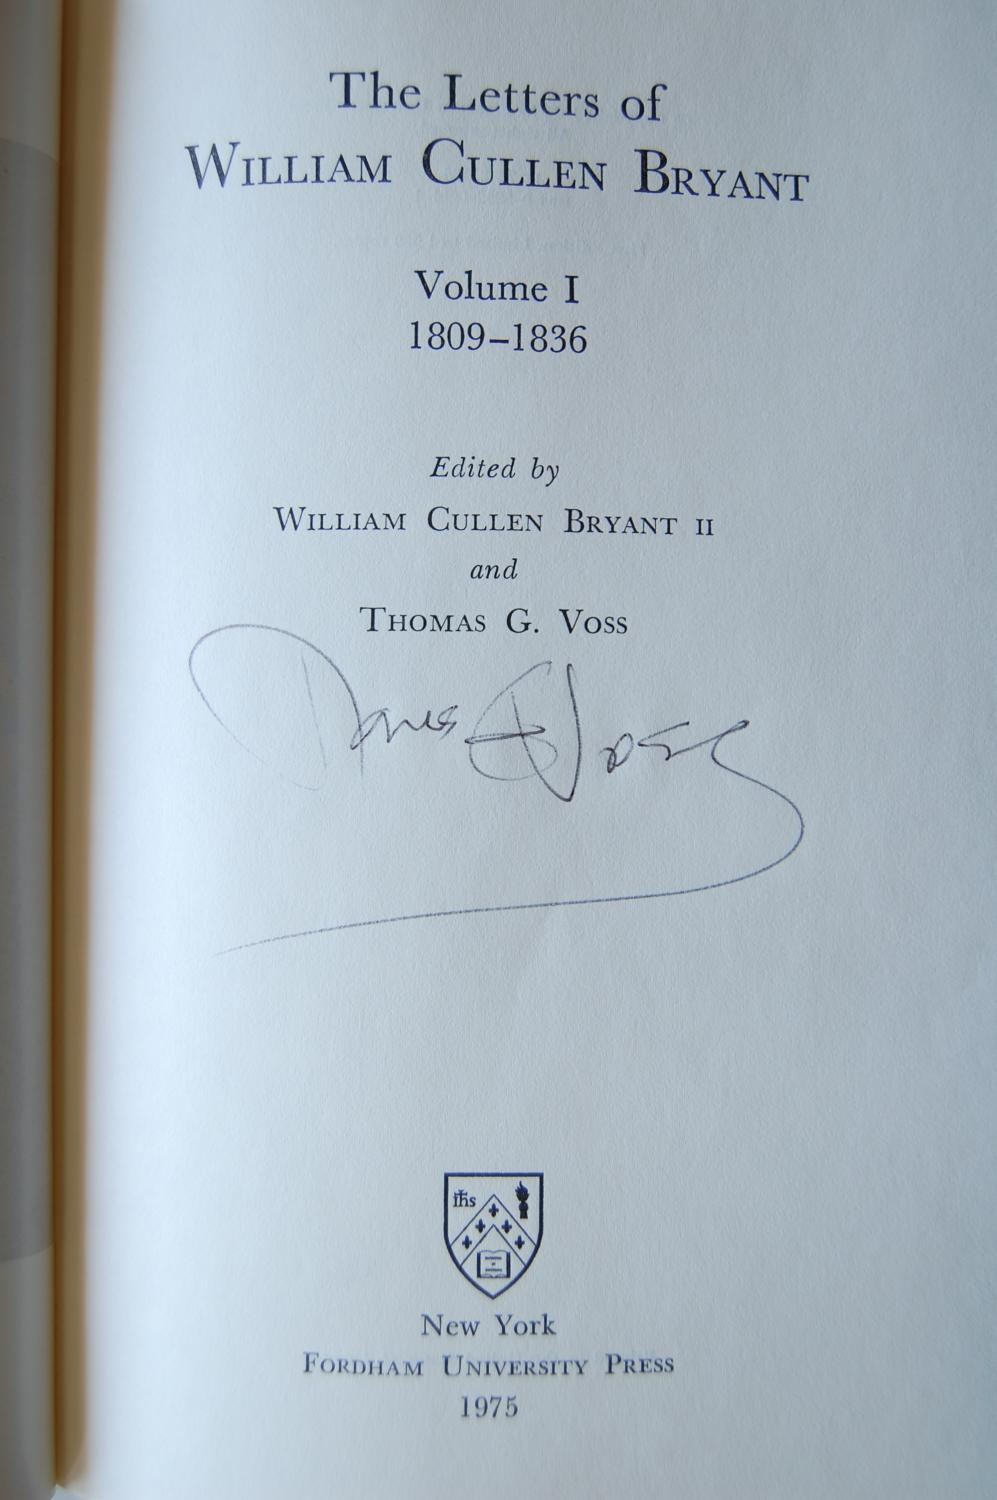 The letters of William Cullen Bryant, Volume 5